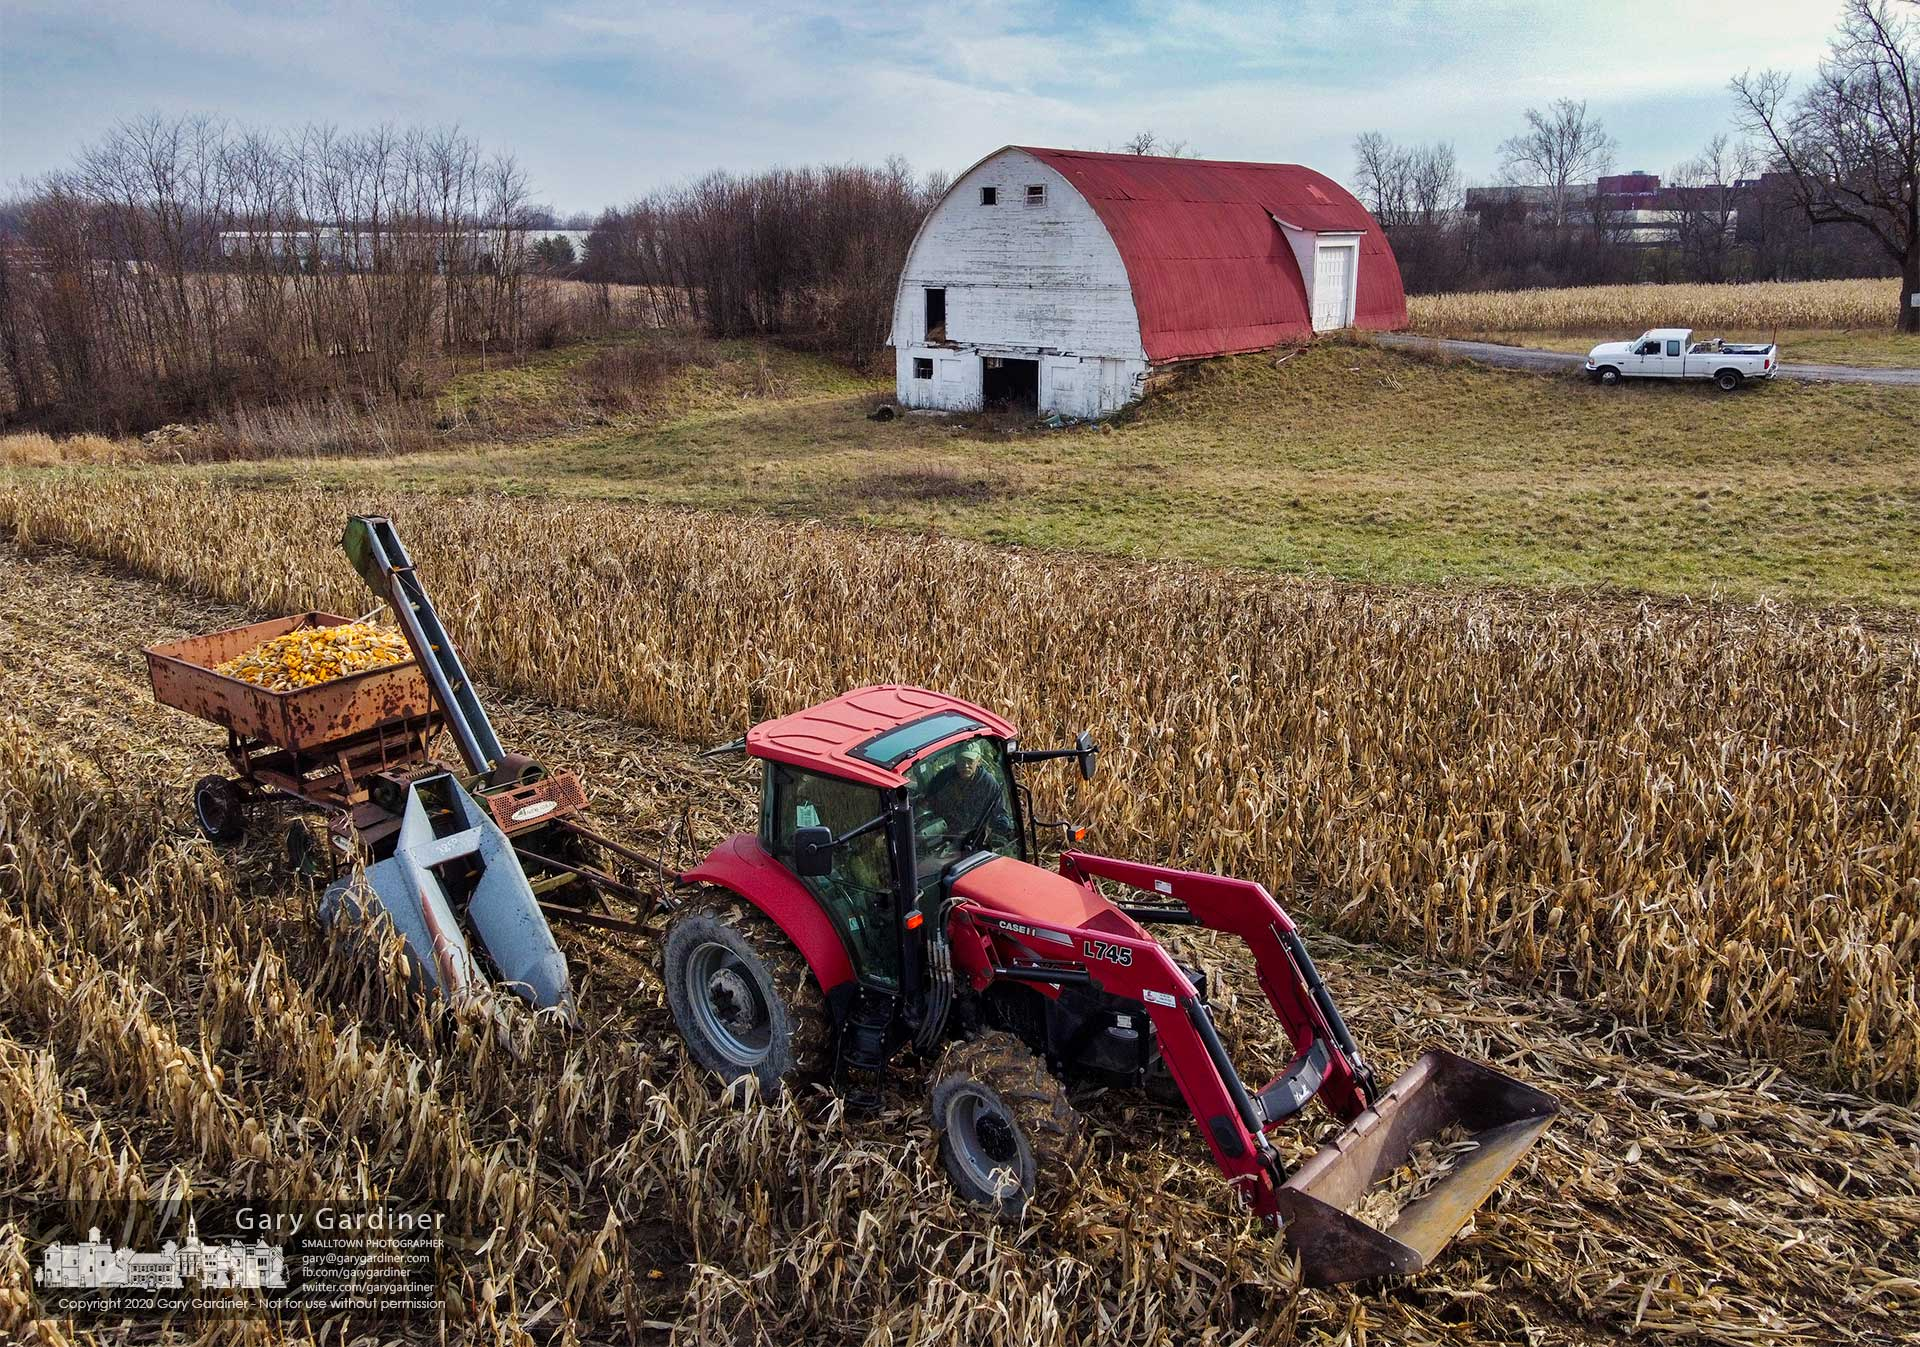 Kevin Scott runs a single row corn picker through the fields at the Braun Farm completing the season of corn for the year. My Final Photo for Jan. 14, 2021.